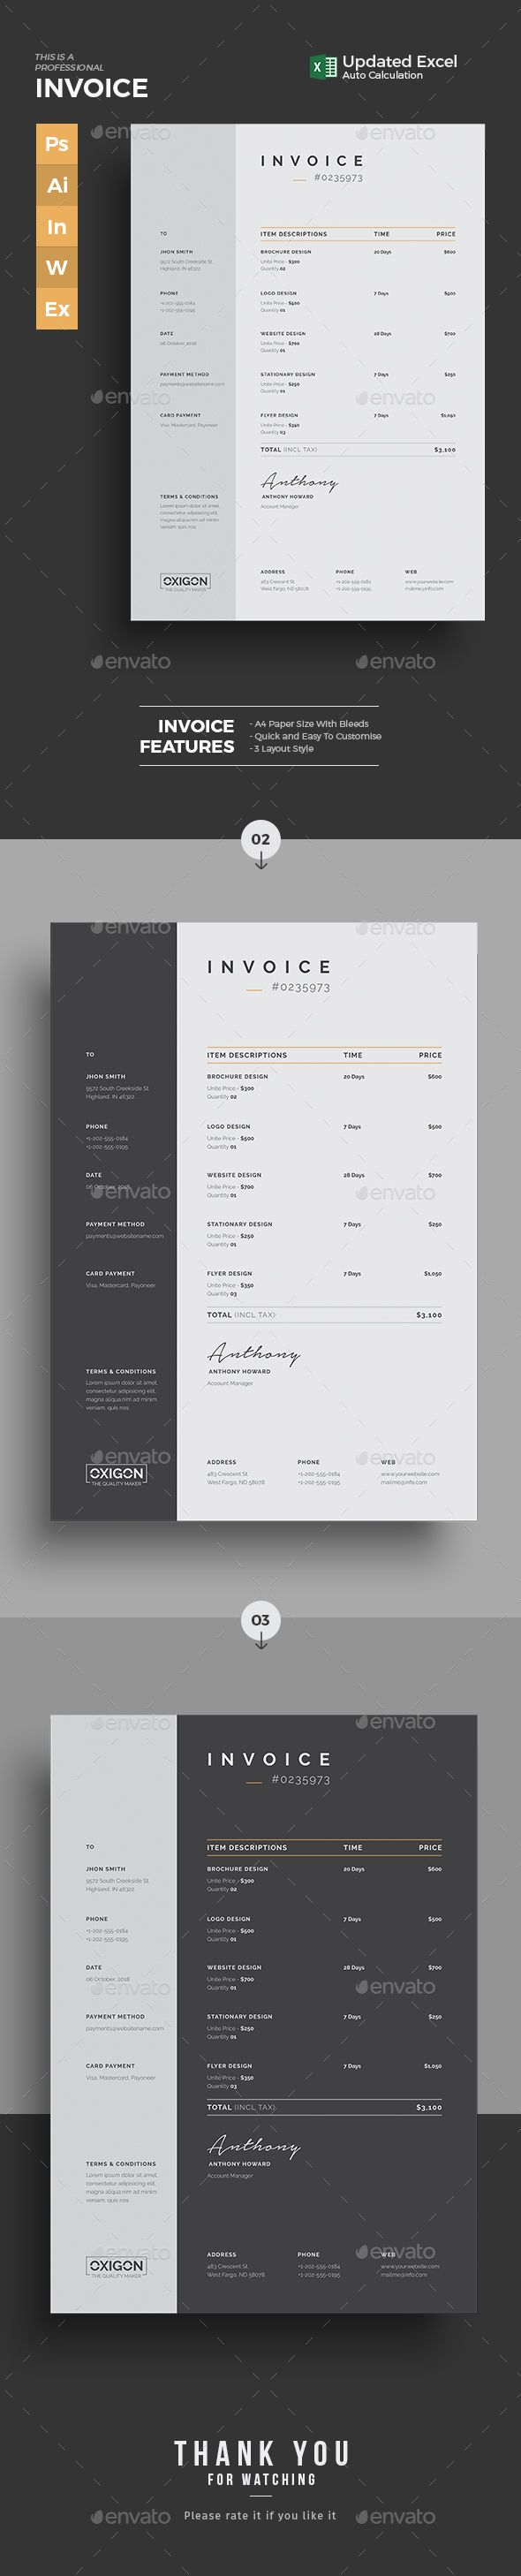 How To Import Invoices Into Quickbooks Pdf  Best Customs Invoice Ideas On Pinterest  Wood Wedding Signs  Ford Explorer Invoice with Invoice Paypal Pdf Invoice Free Invoice Template Printable Word